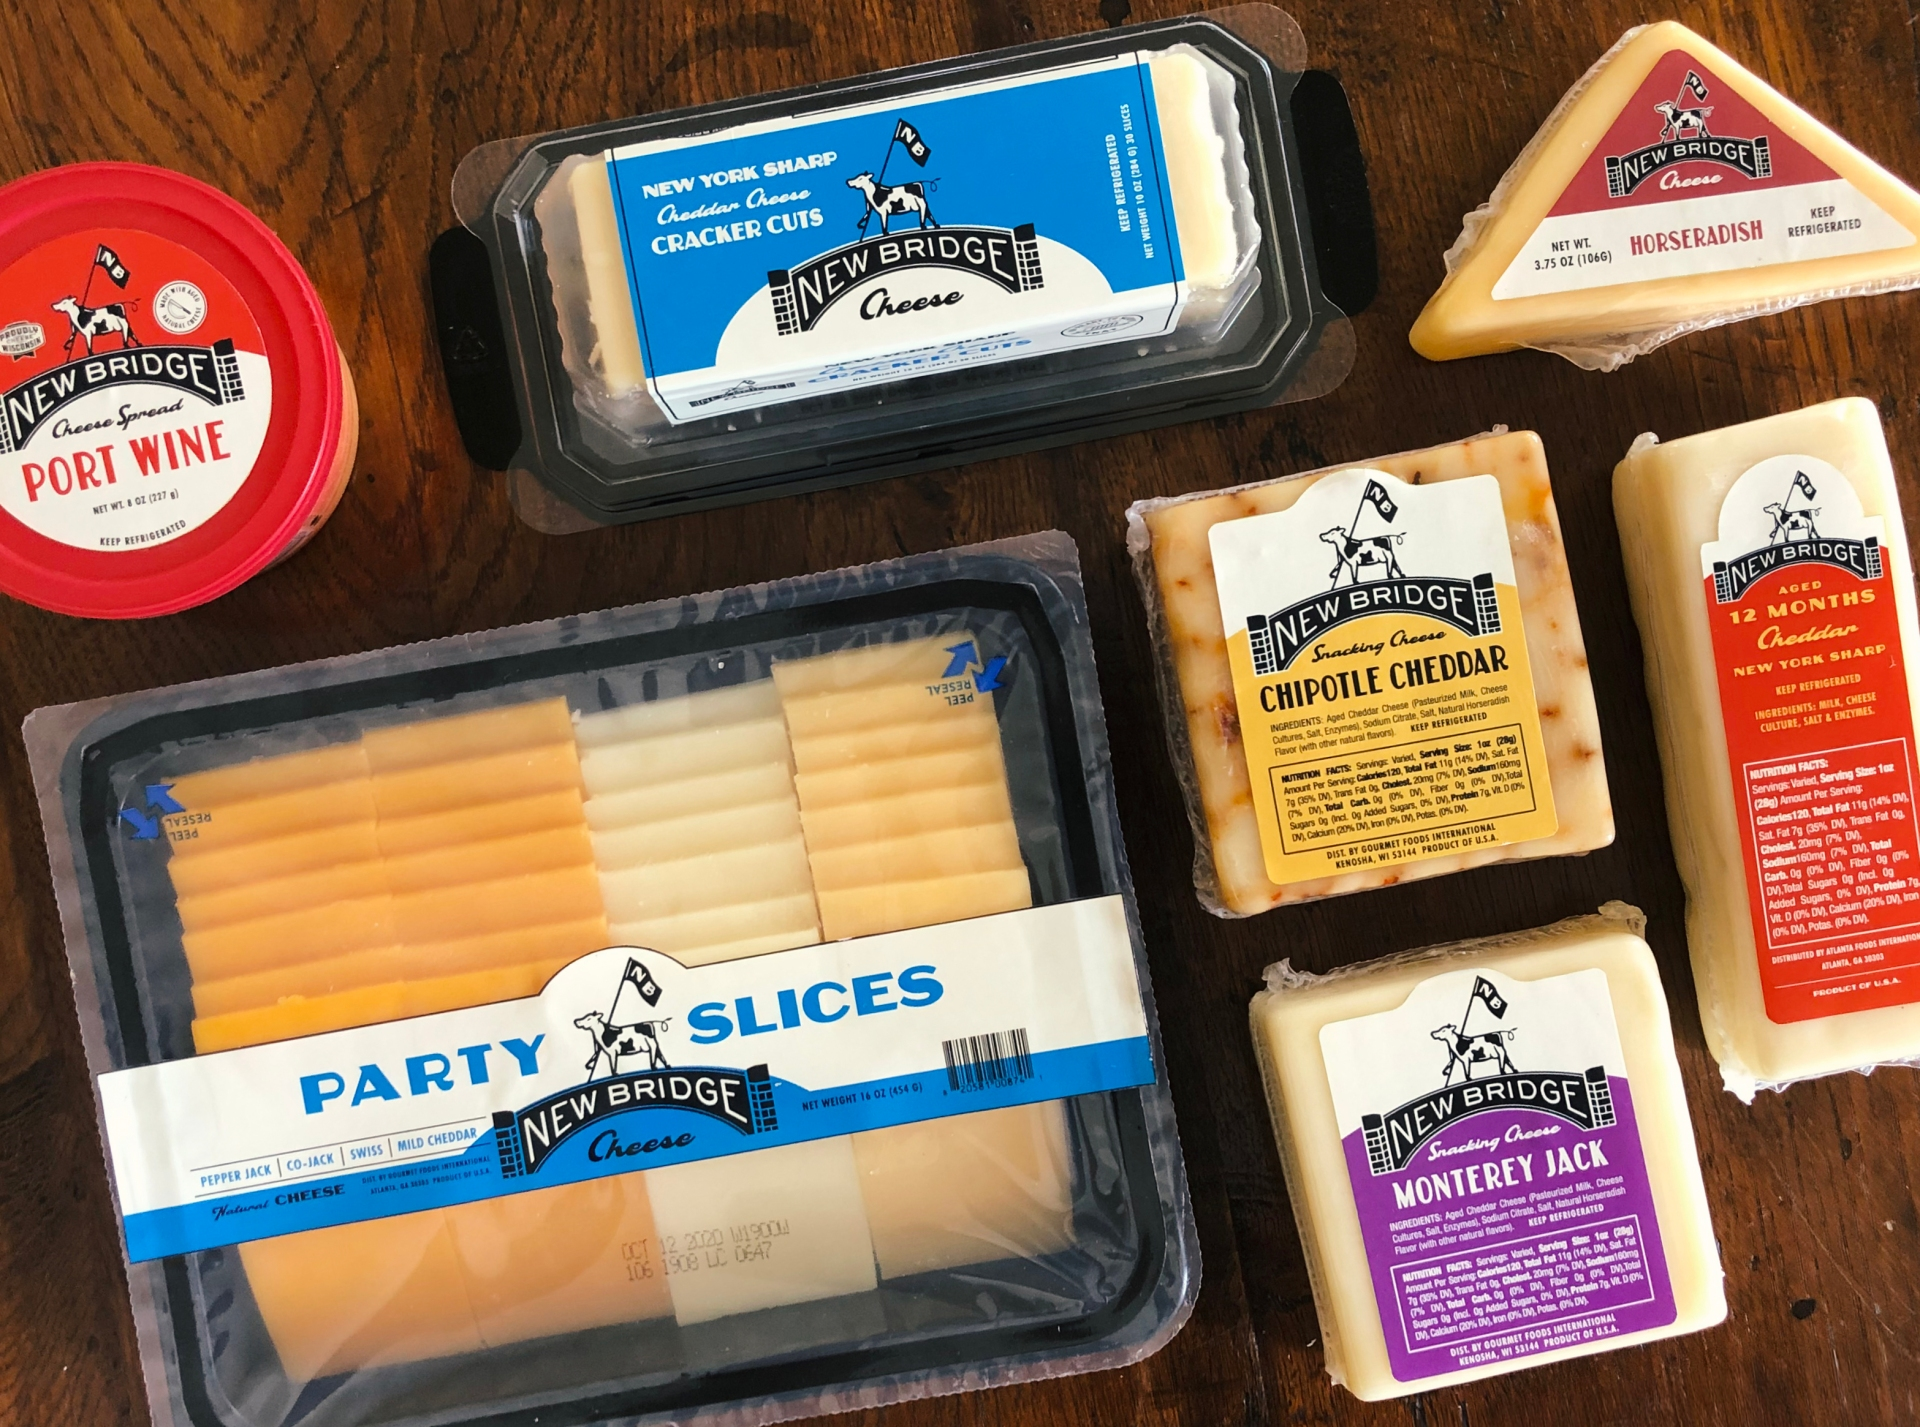 photo-2-guideline-new-bridge-cheese-design-exploration-zeki-michael-design-cheese-cow-spread-tub-sku-range-agency-branding copy